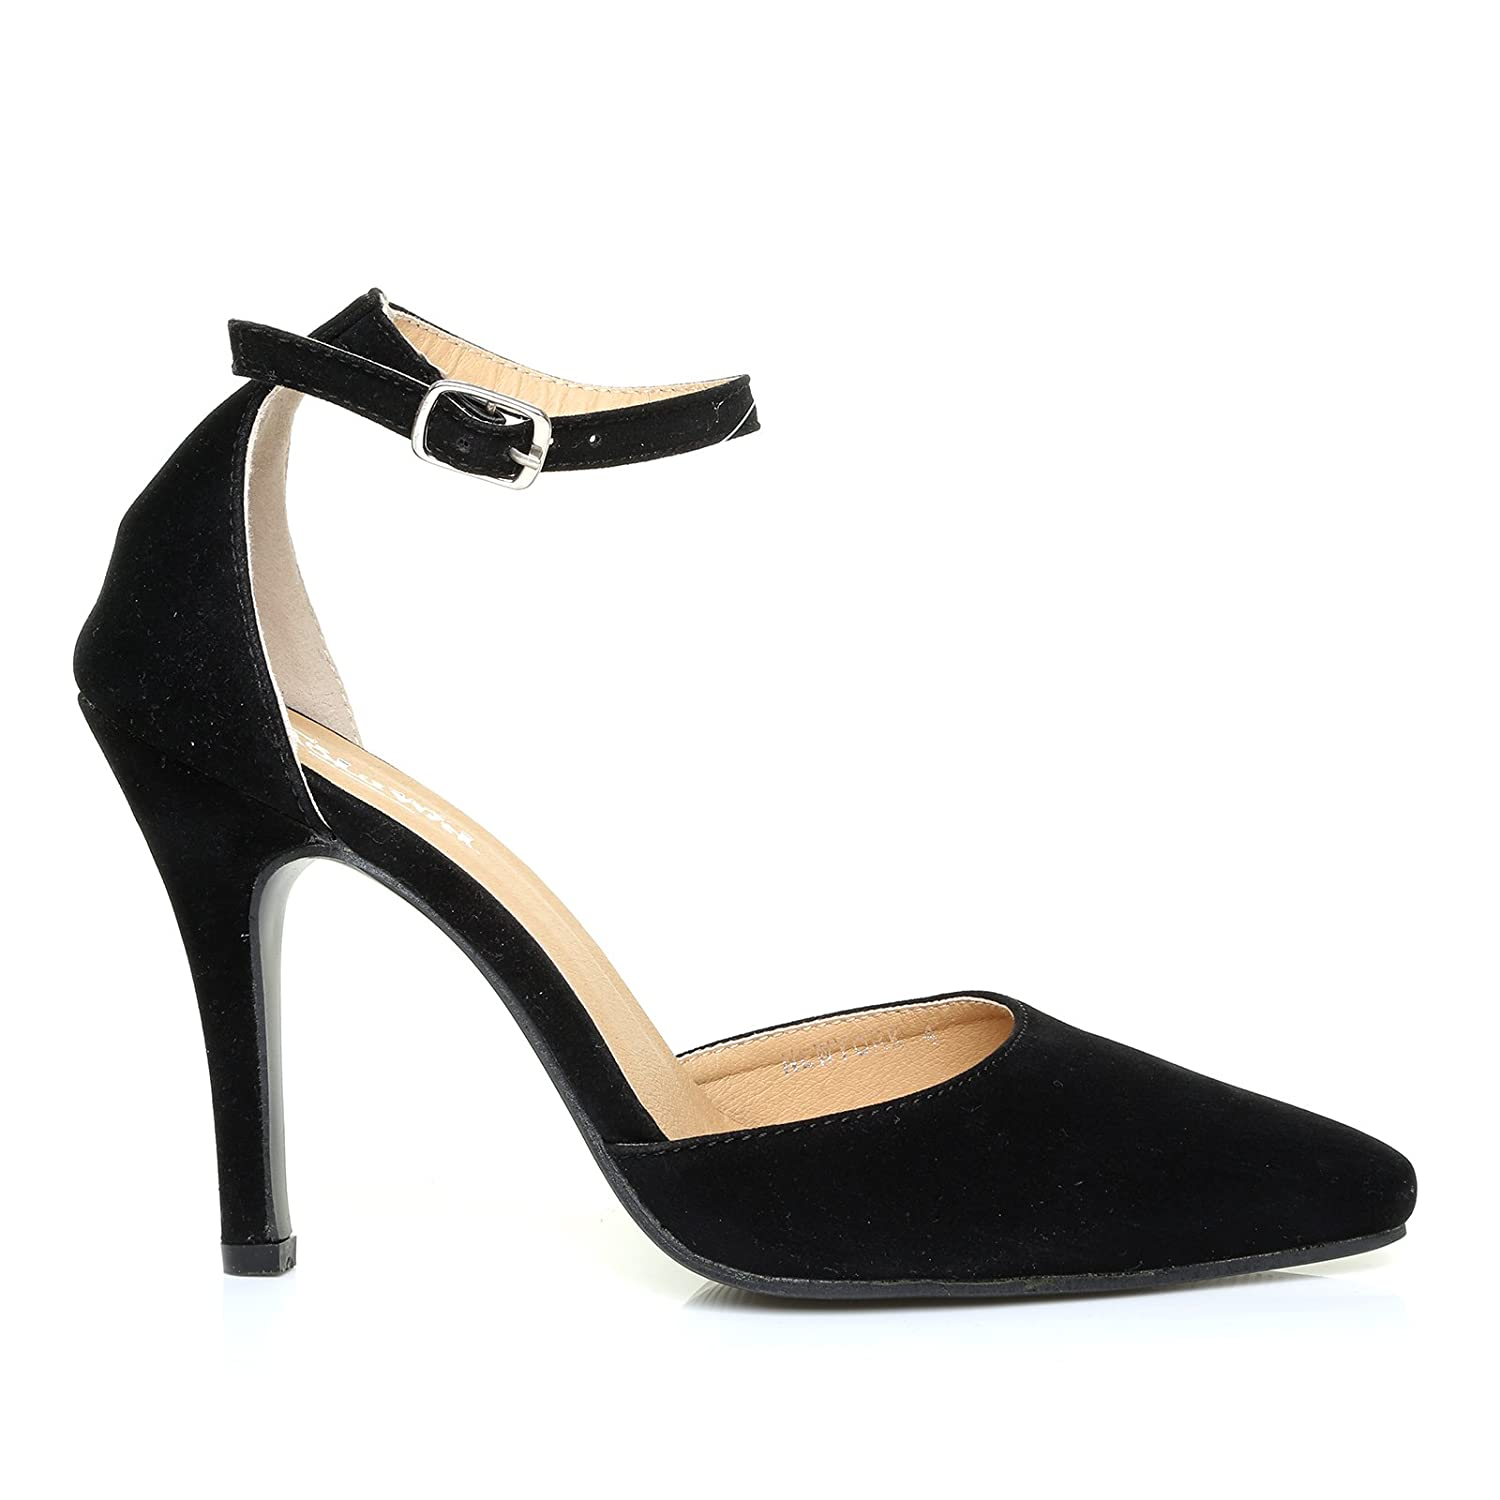 cb9fab21024 New York Black Faux Suede Ankle Strap Pointed High Heel Court Shoes ...